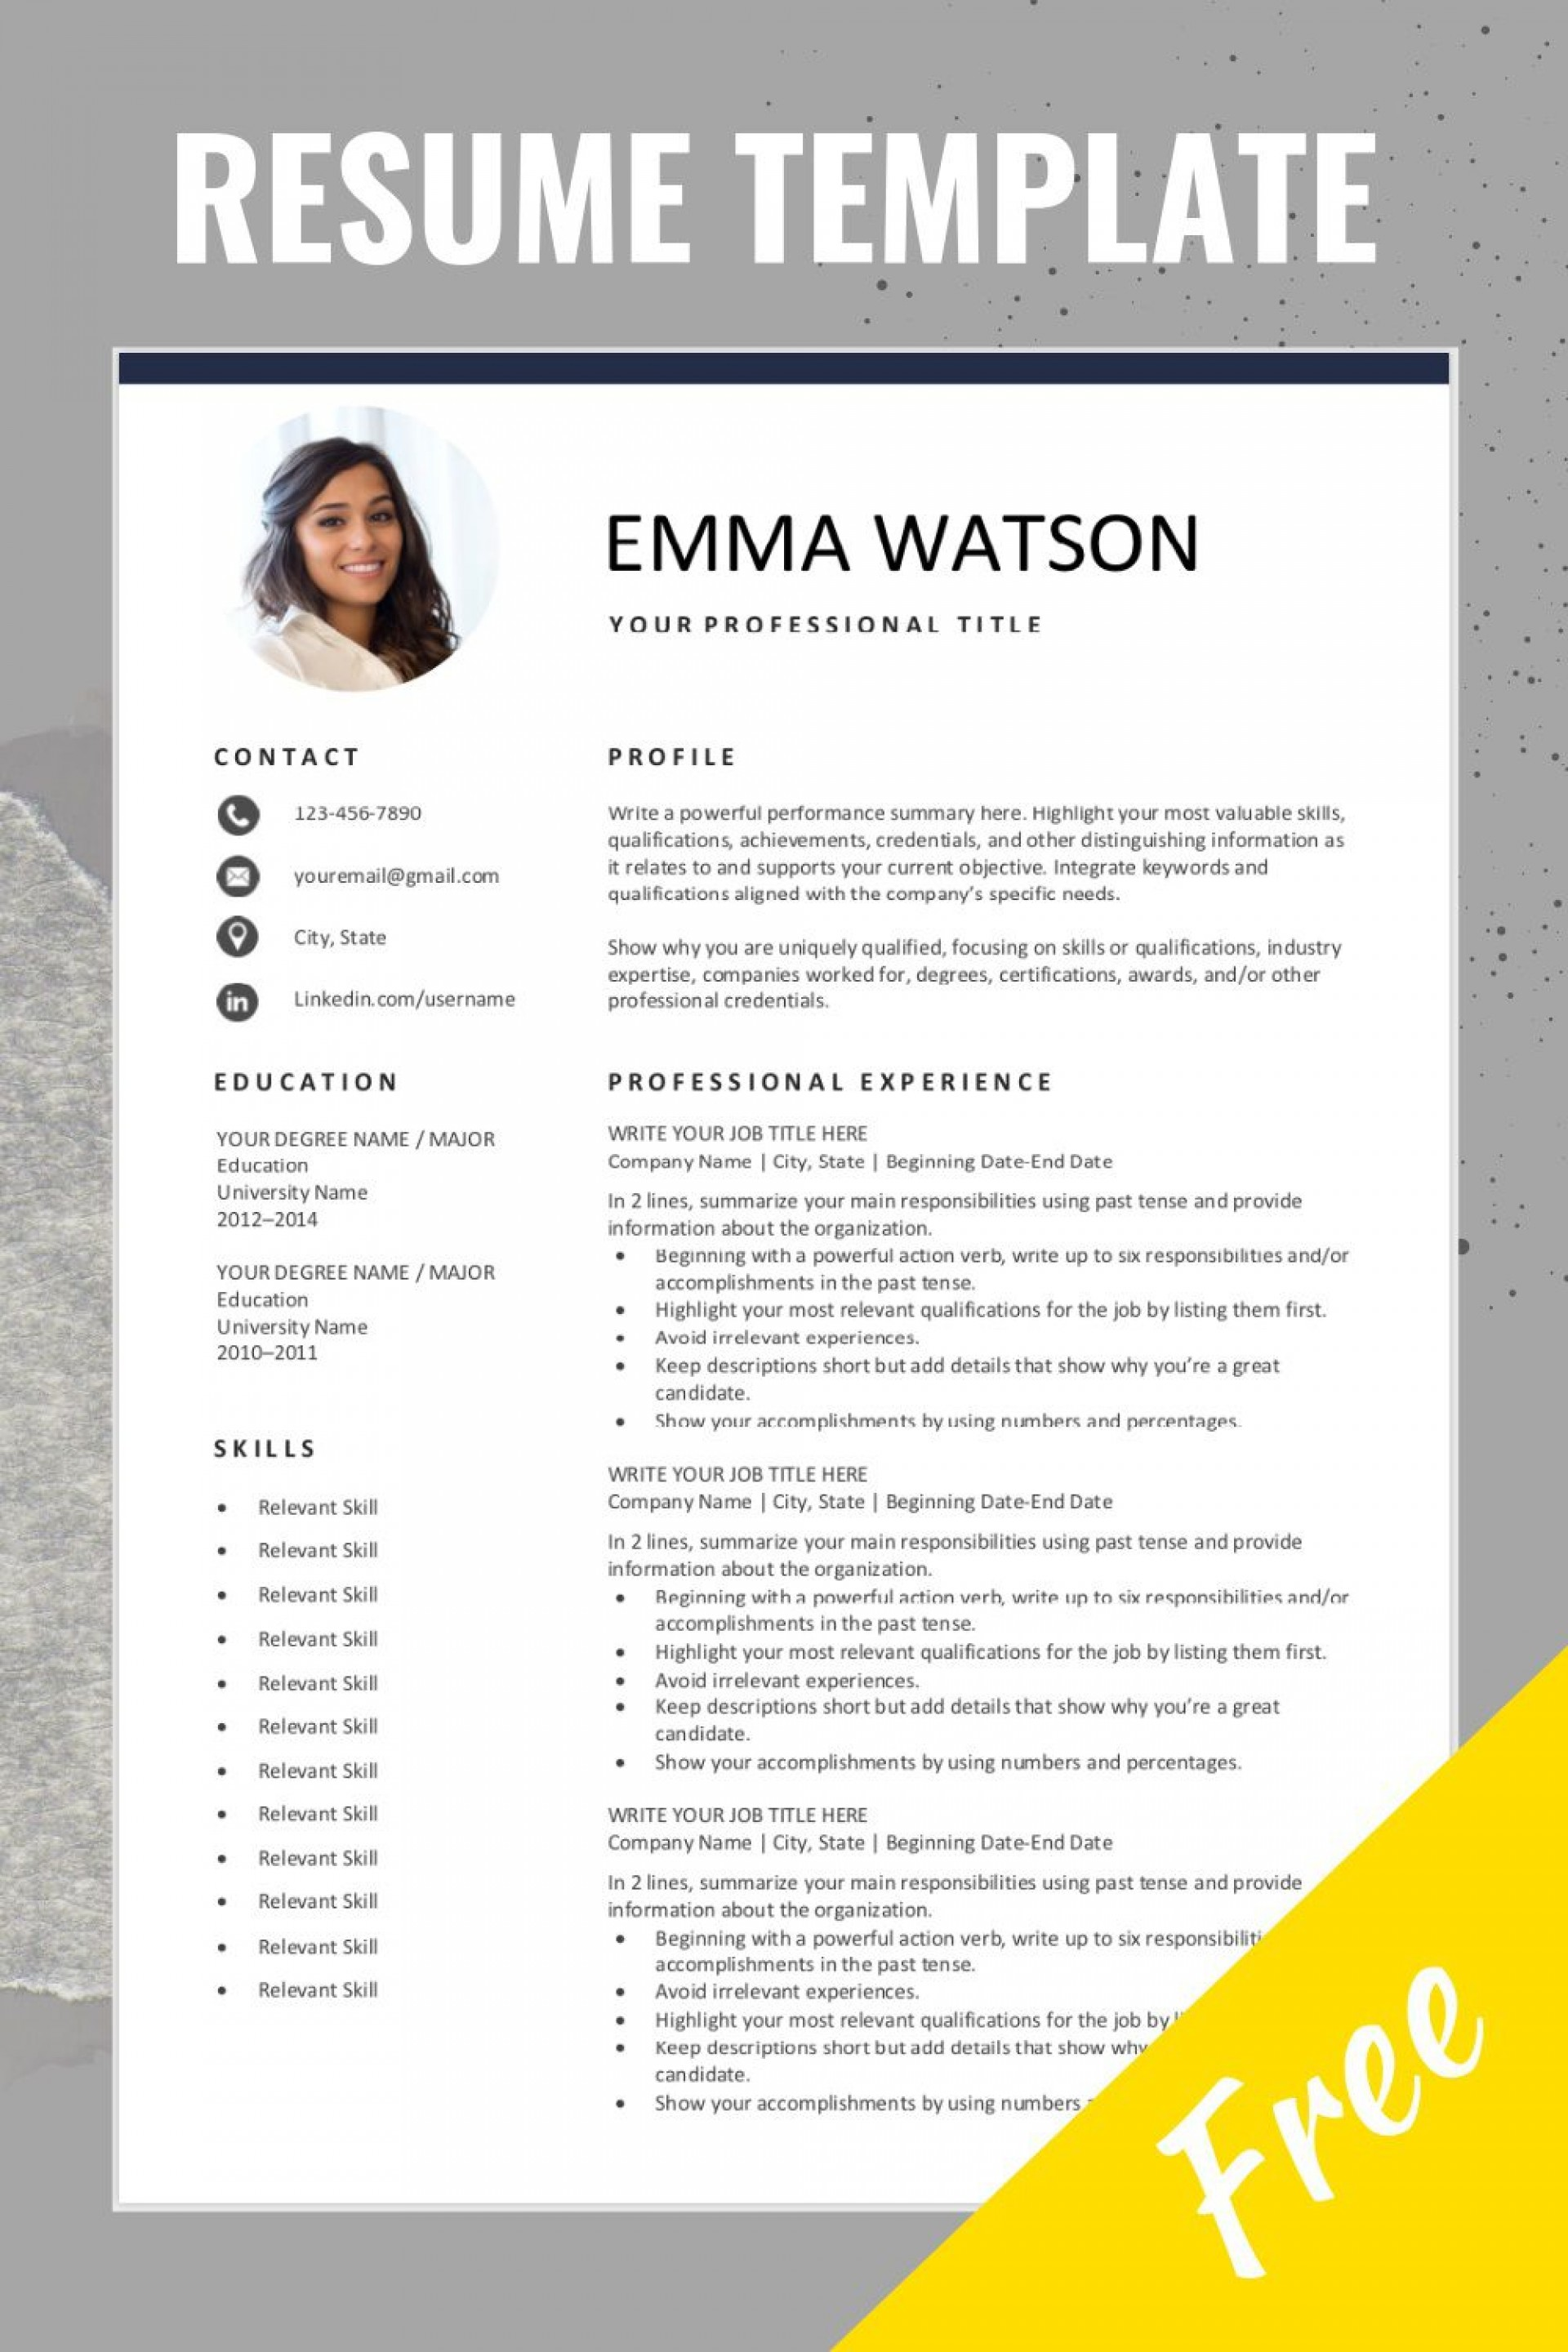 000 Exceptional Free Resume Template Microsoft Word Picture  2007 Eye Catching Download 20101920